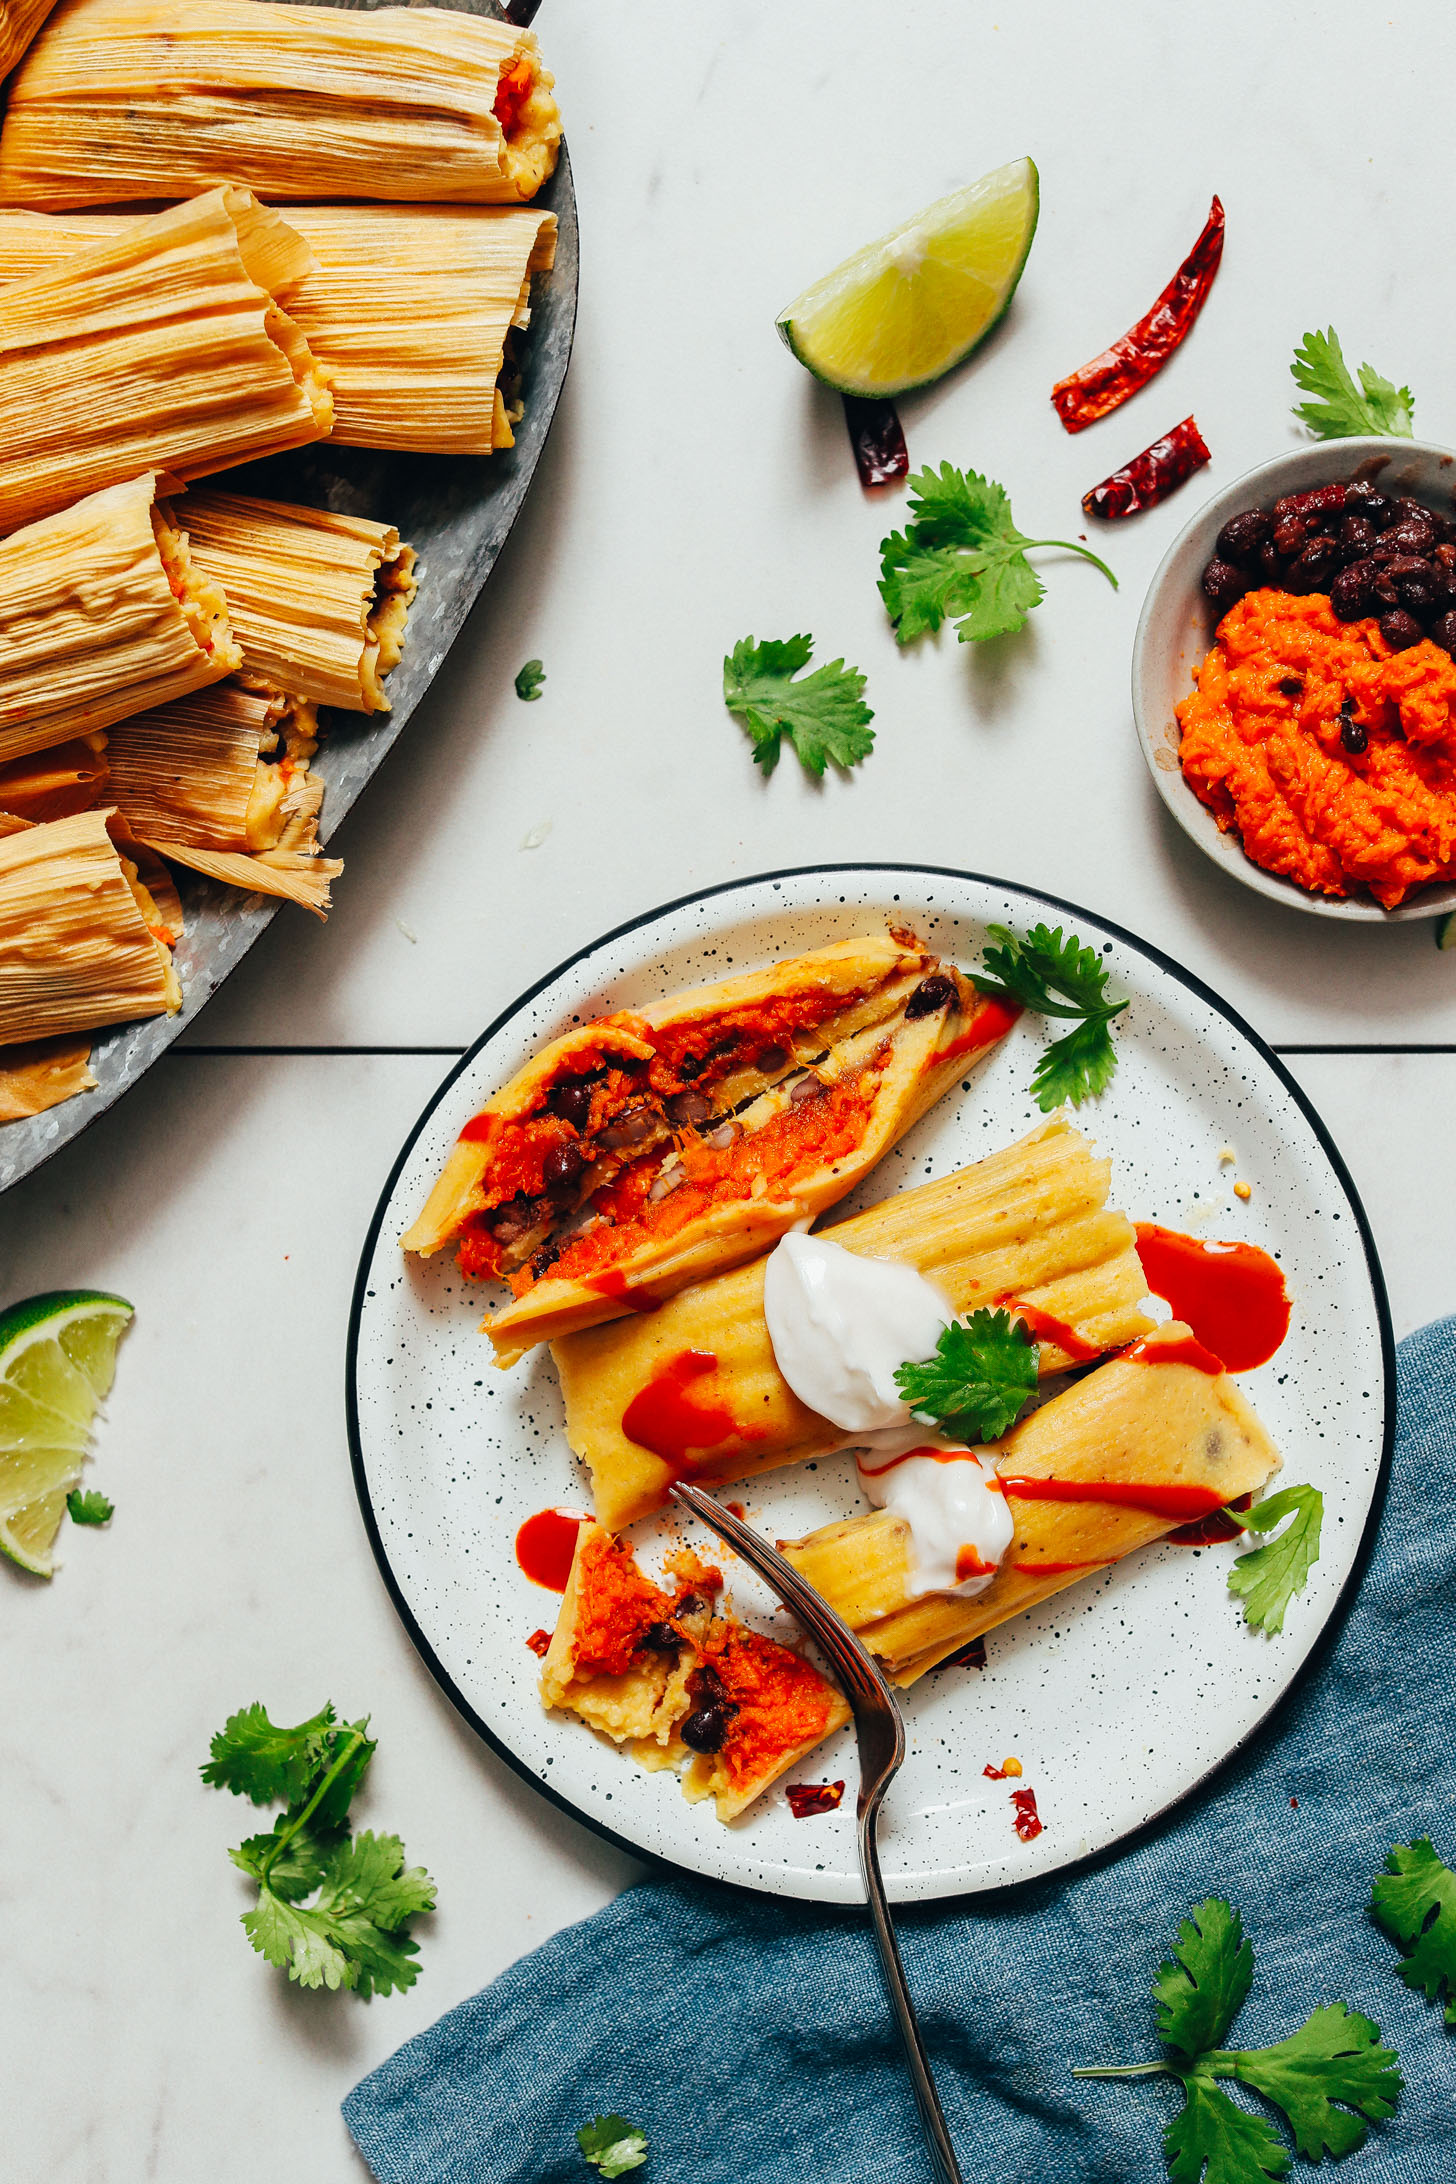 Using a fork to slice into a plate of vegan tamales